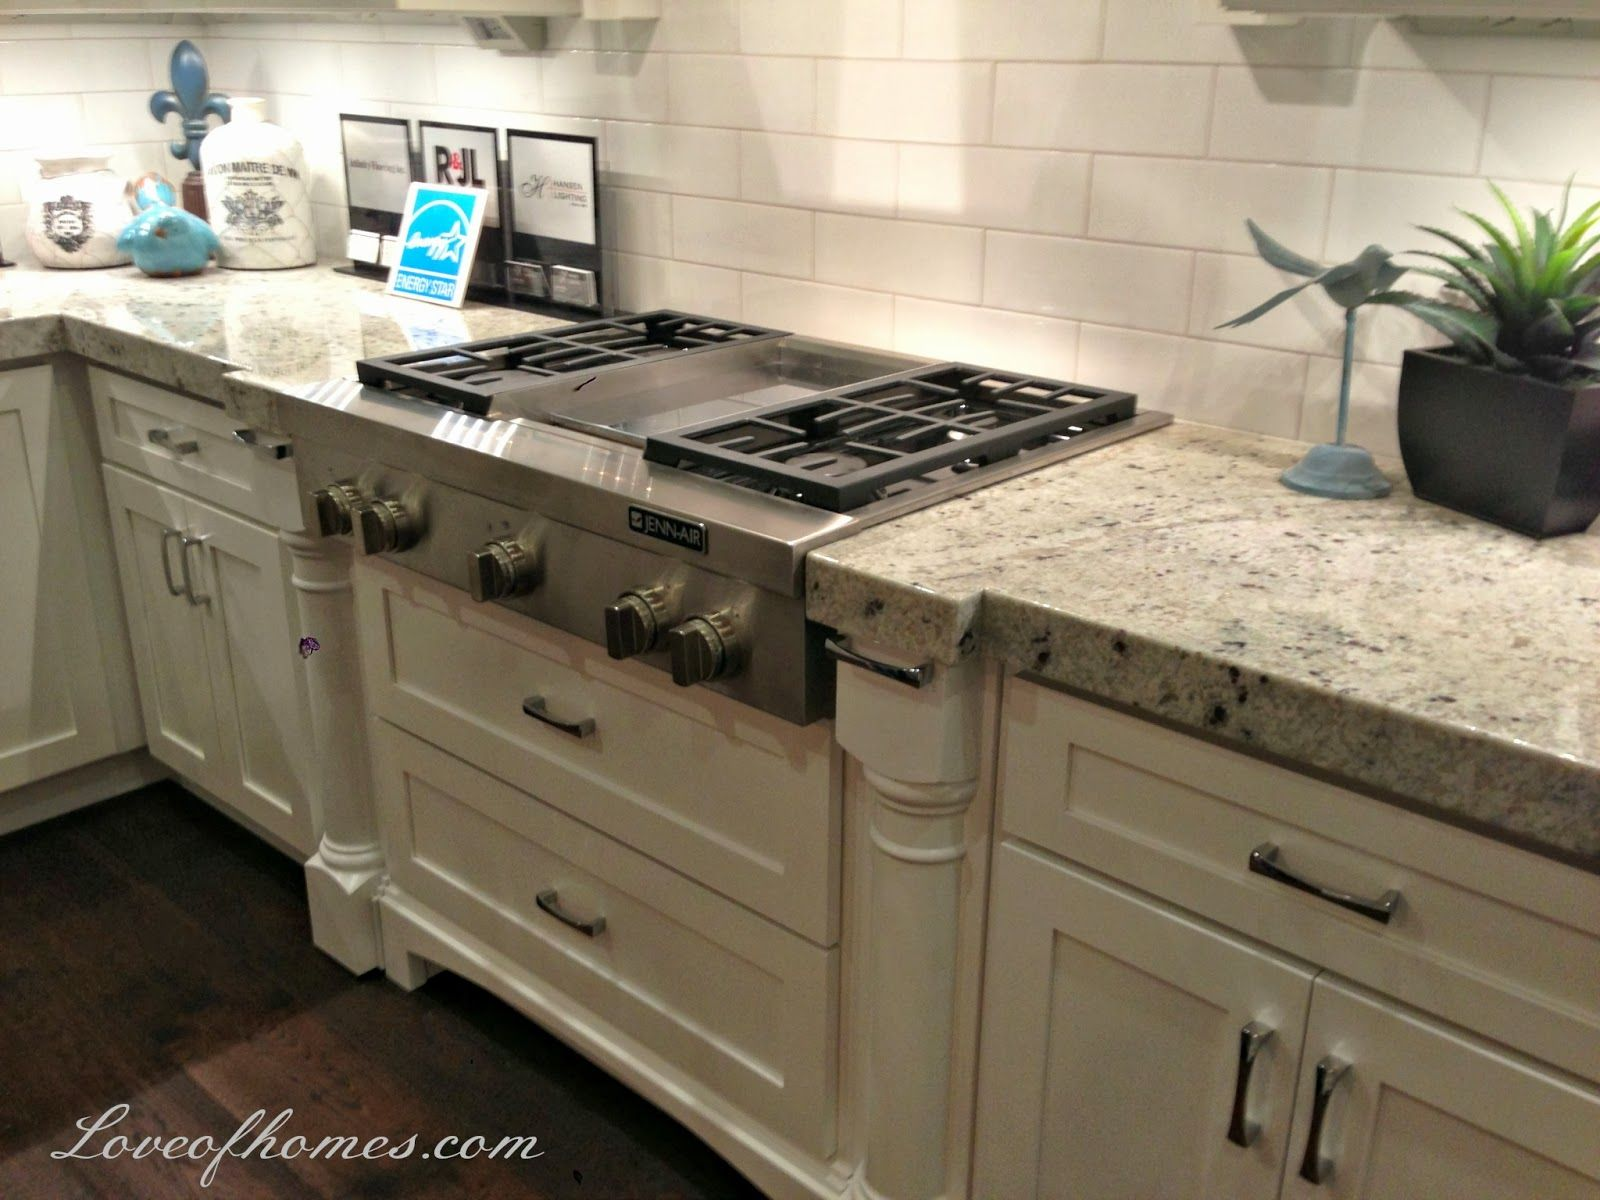 Kitchen Cabinets Legs kitchen cabinet decorative legs next to stove - google search